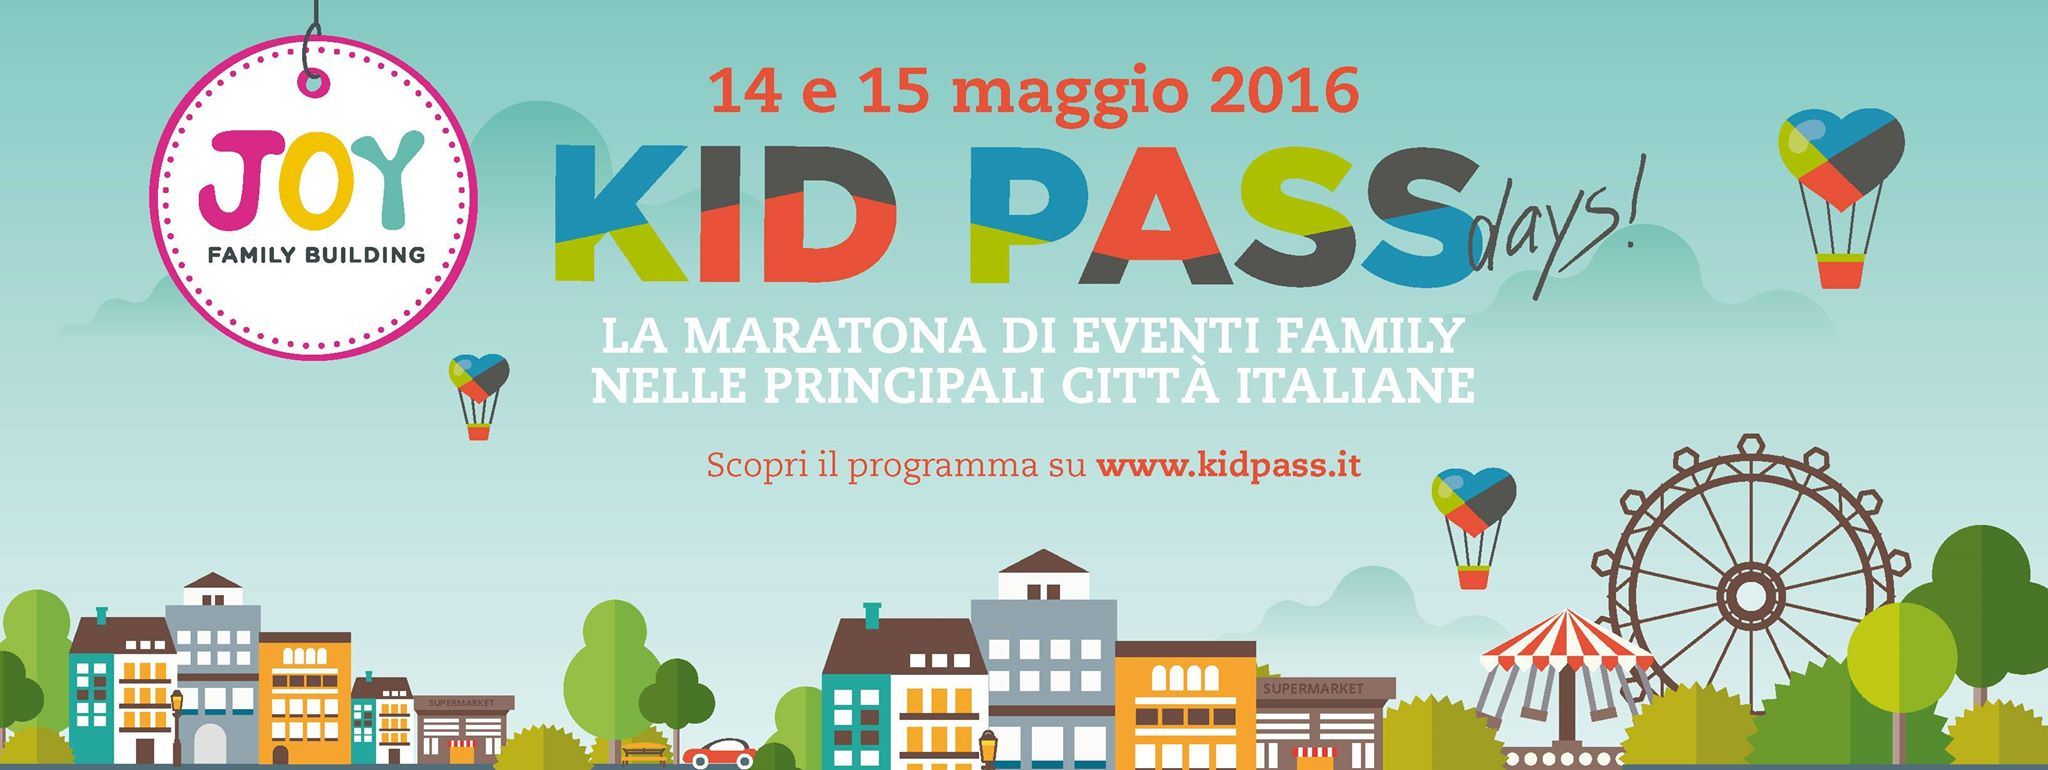 14 e 15 maggio Kid Pass Day Firenze